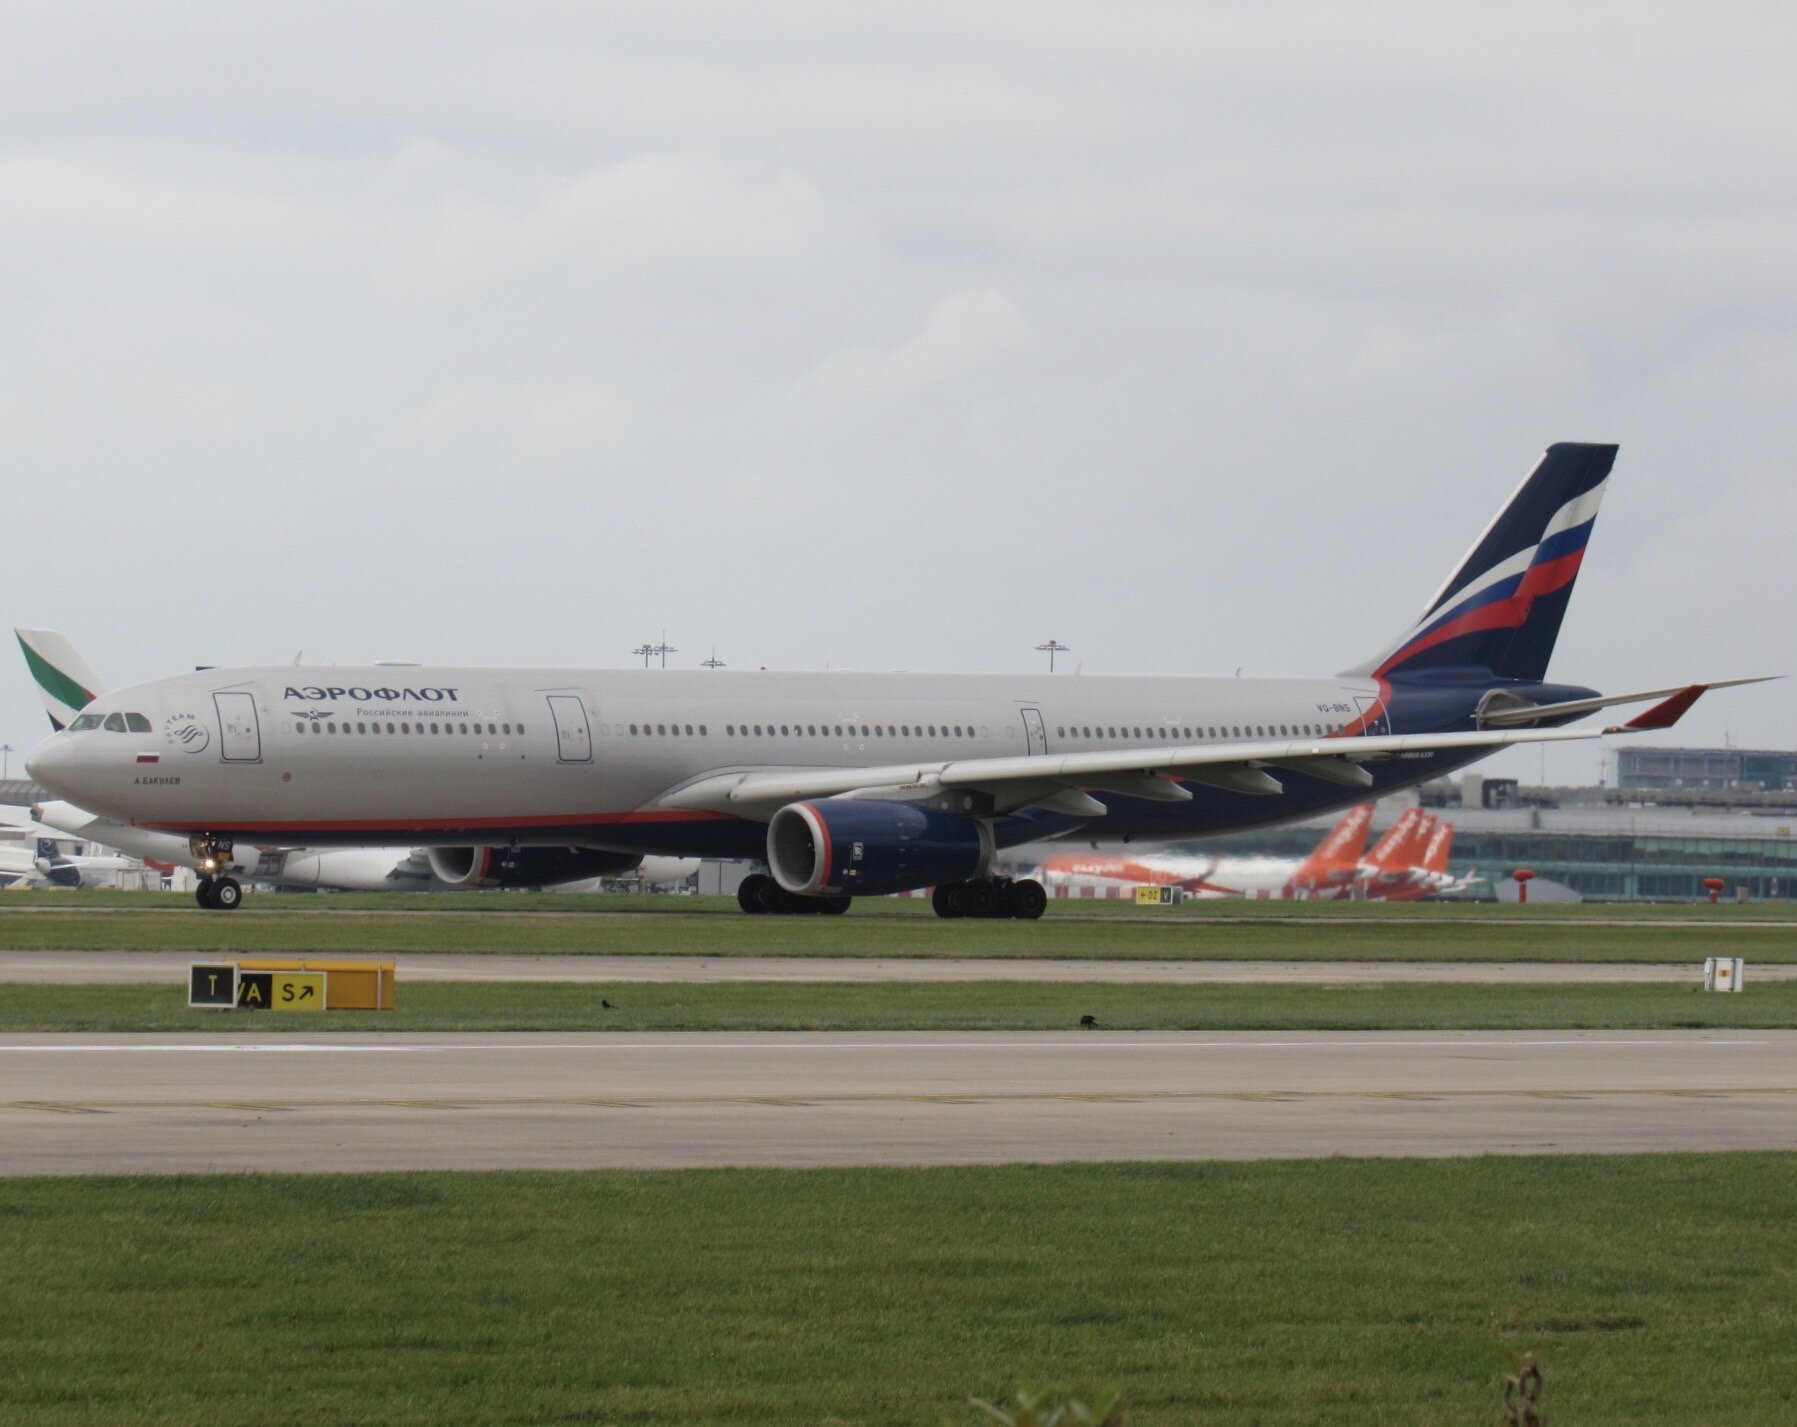 Aeroflot A330-300 VQ-BNS provided the transport for Man United to Belgrade on 23rd October. Photo: With thanks to Stephen Rowland.